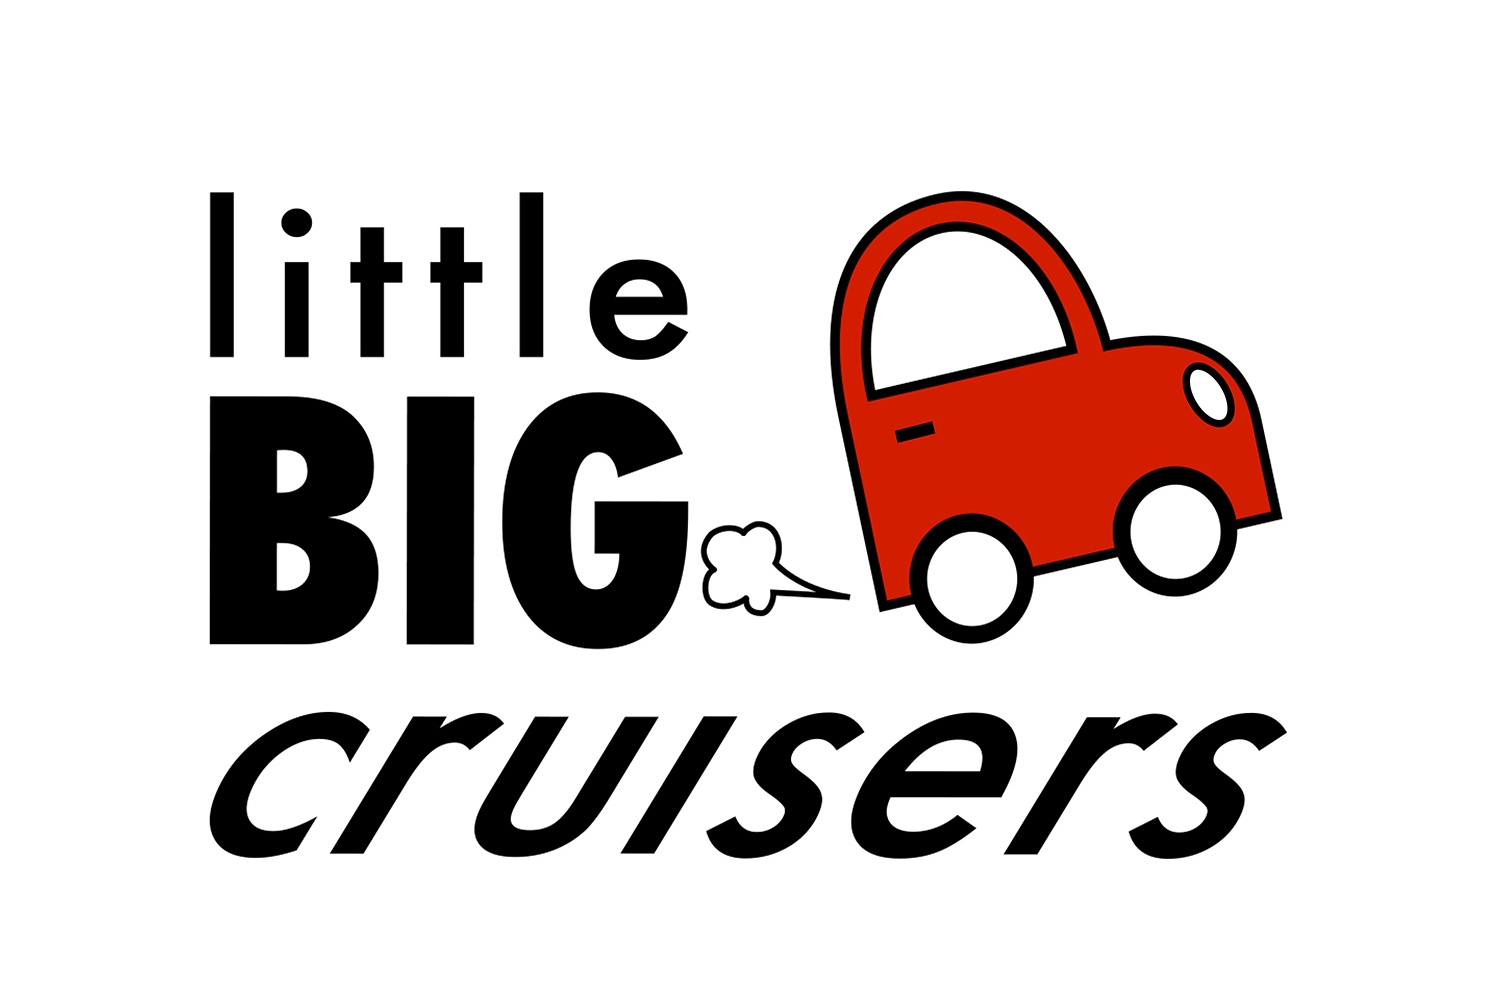 Little Big Cruisers